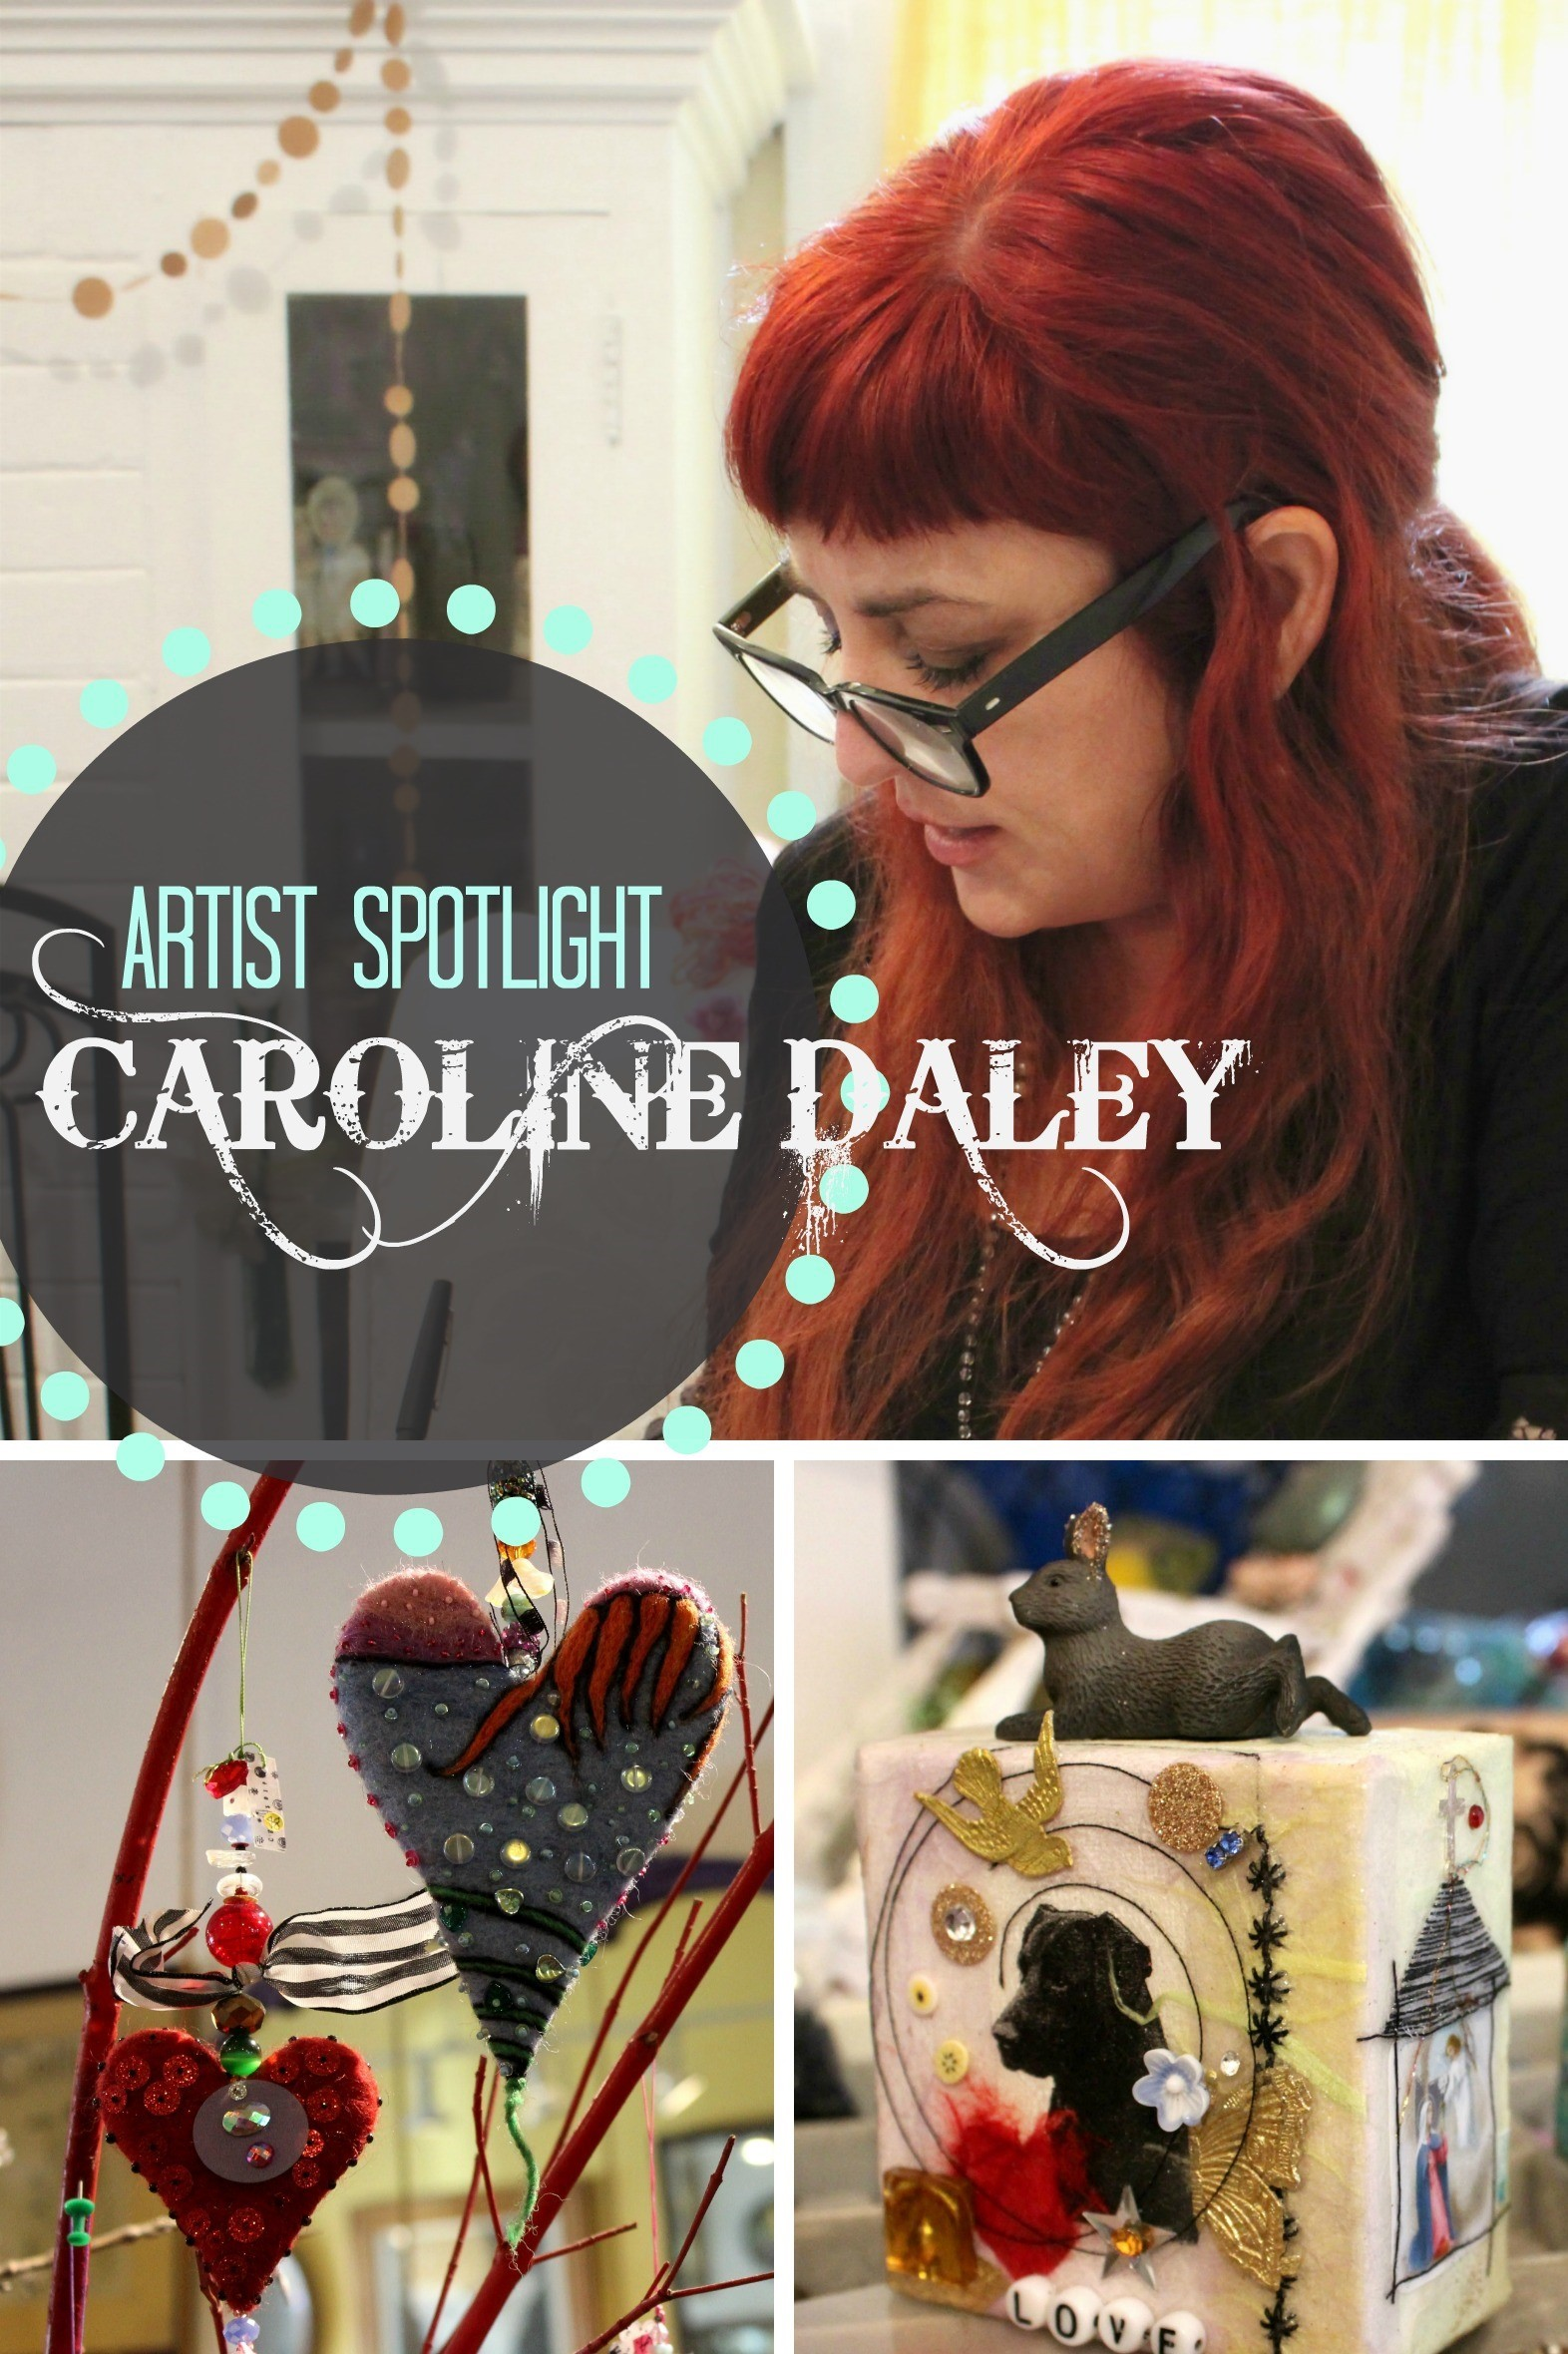 Mixed media artist Caroline Daley